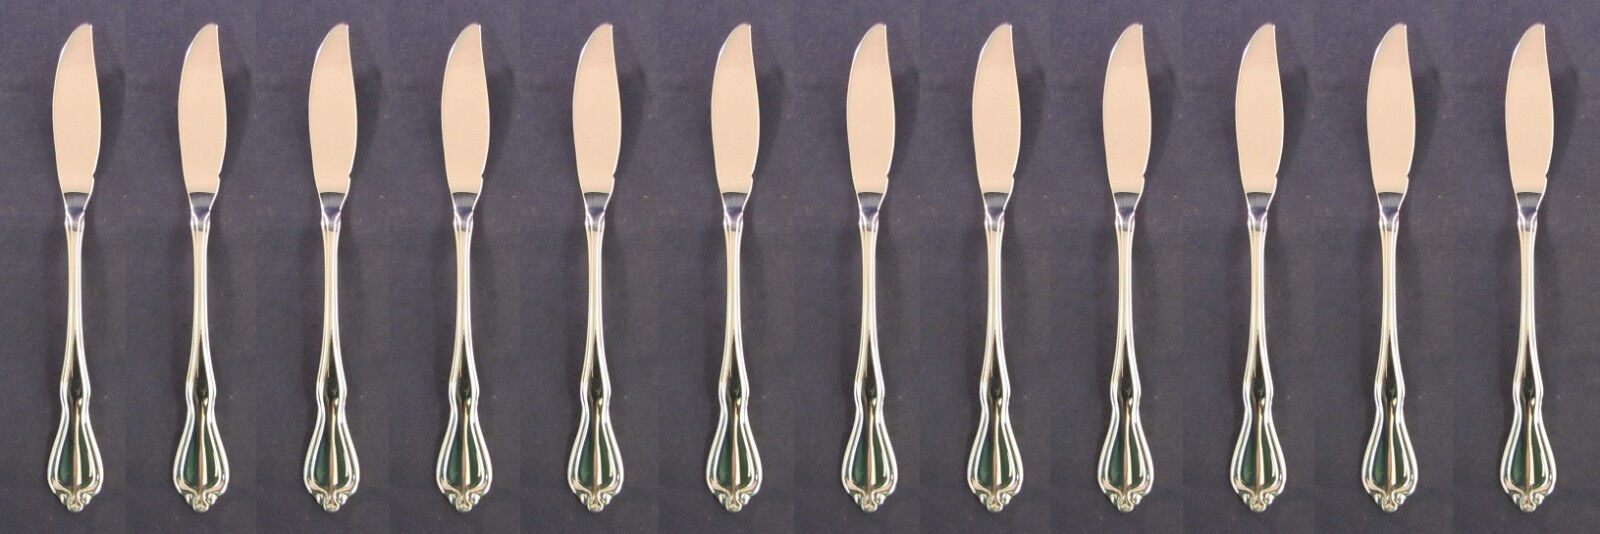 Oneida Silverplate Flatware Croydon Fish Knives Canada